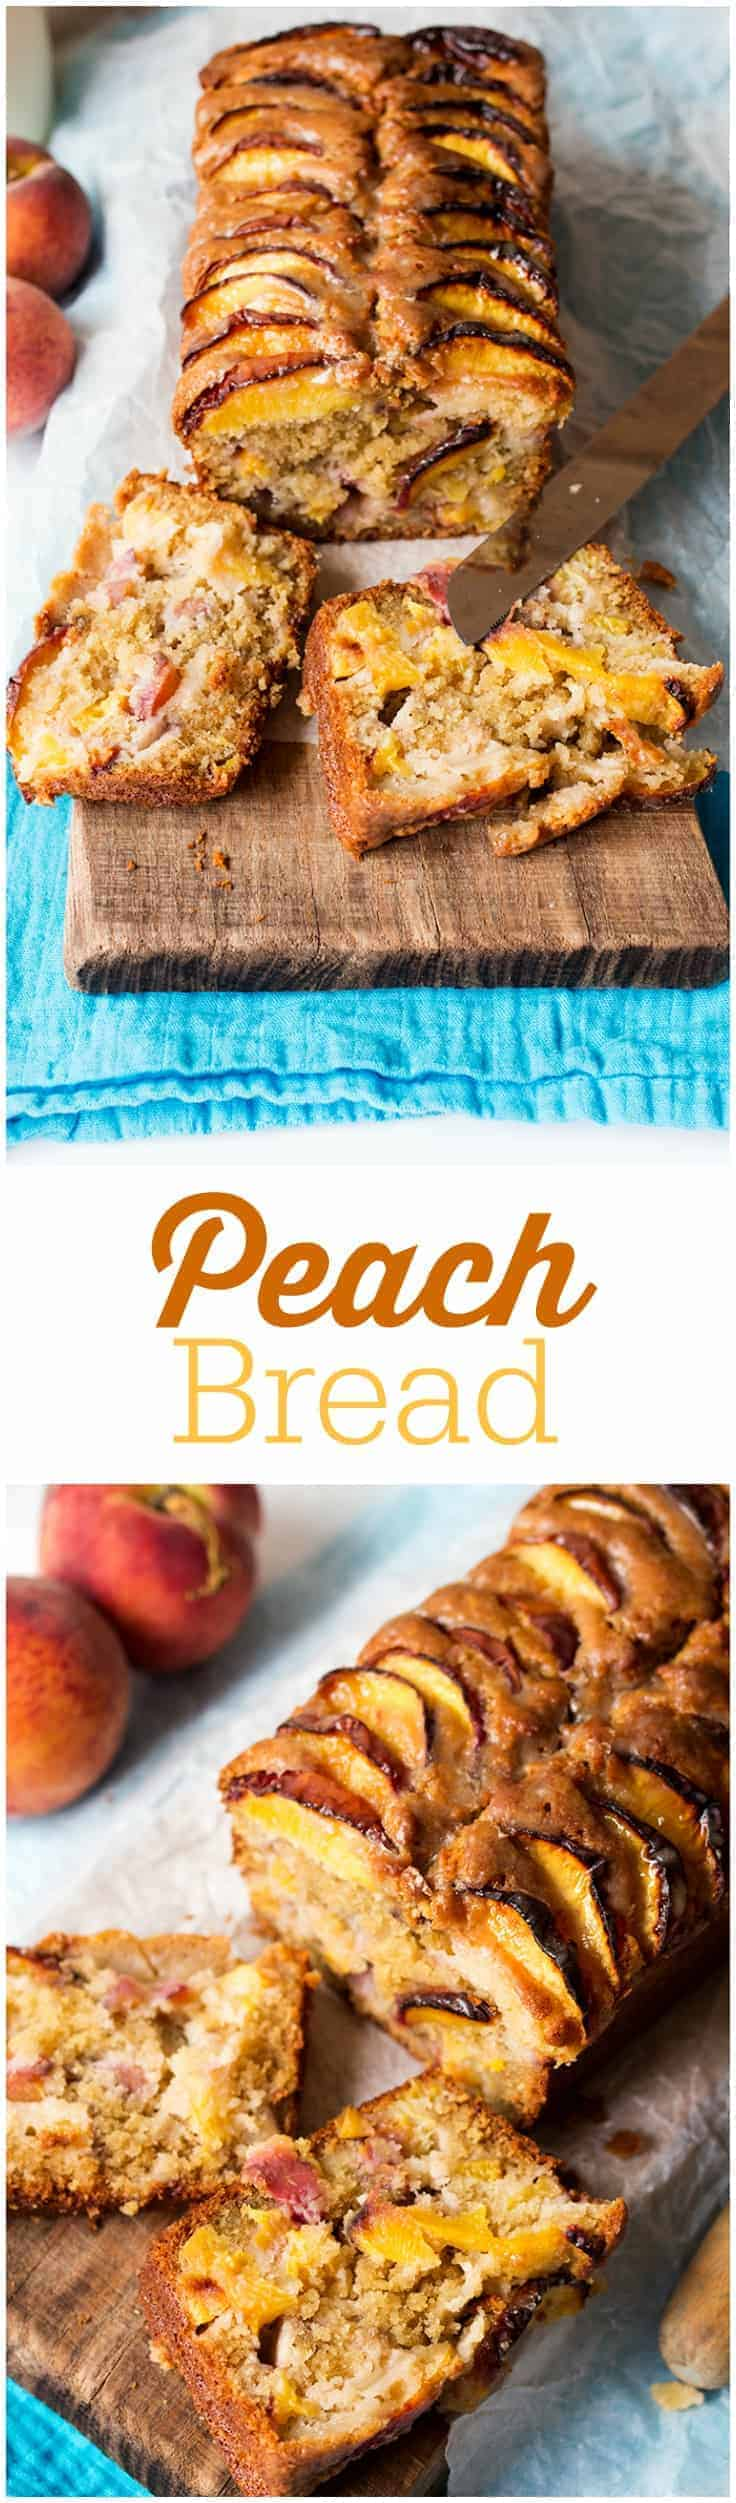 Peach Bread - Great bread for all hours! This easy, fruity loaf is the best peach baked treat out there glazed with brown sugar goodness.